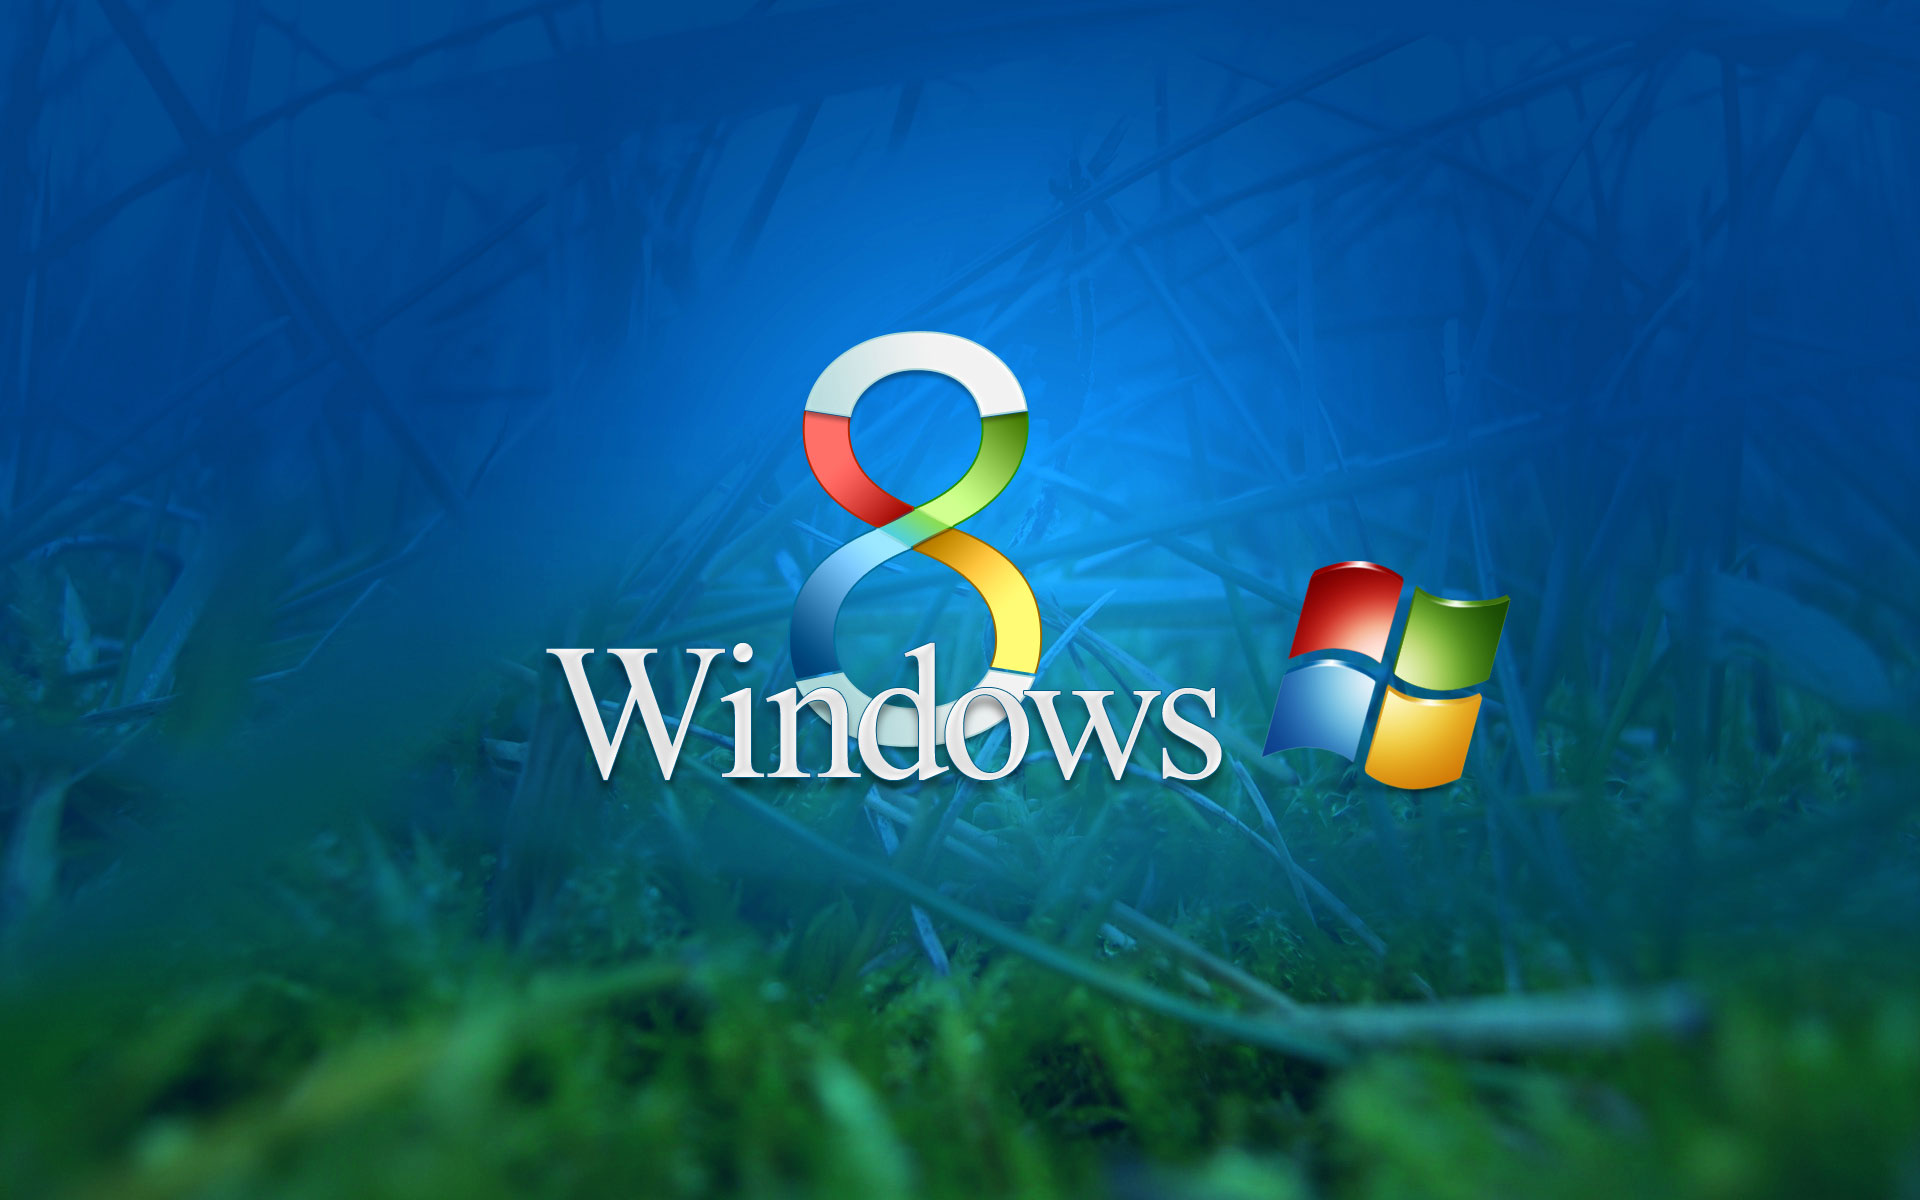 busquedas windows 8 window 8 imagenes de windows 8 windows win 8